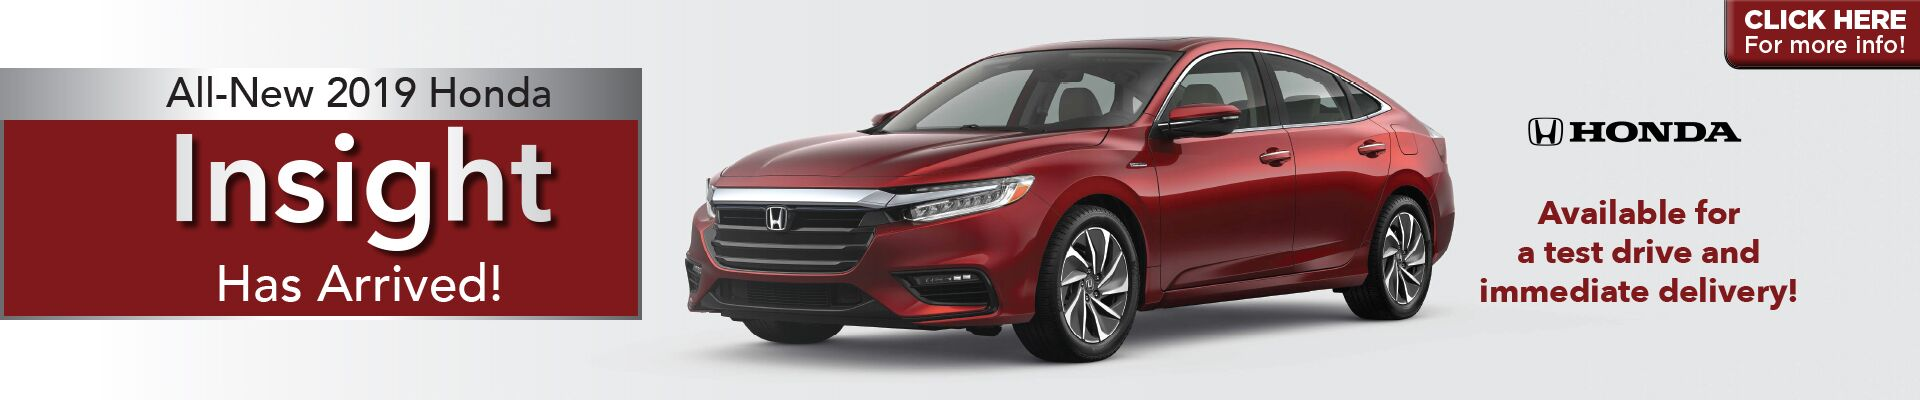 2019 Insight. Atlantic Honda